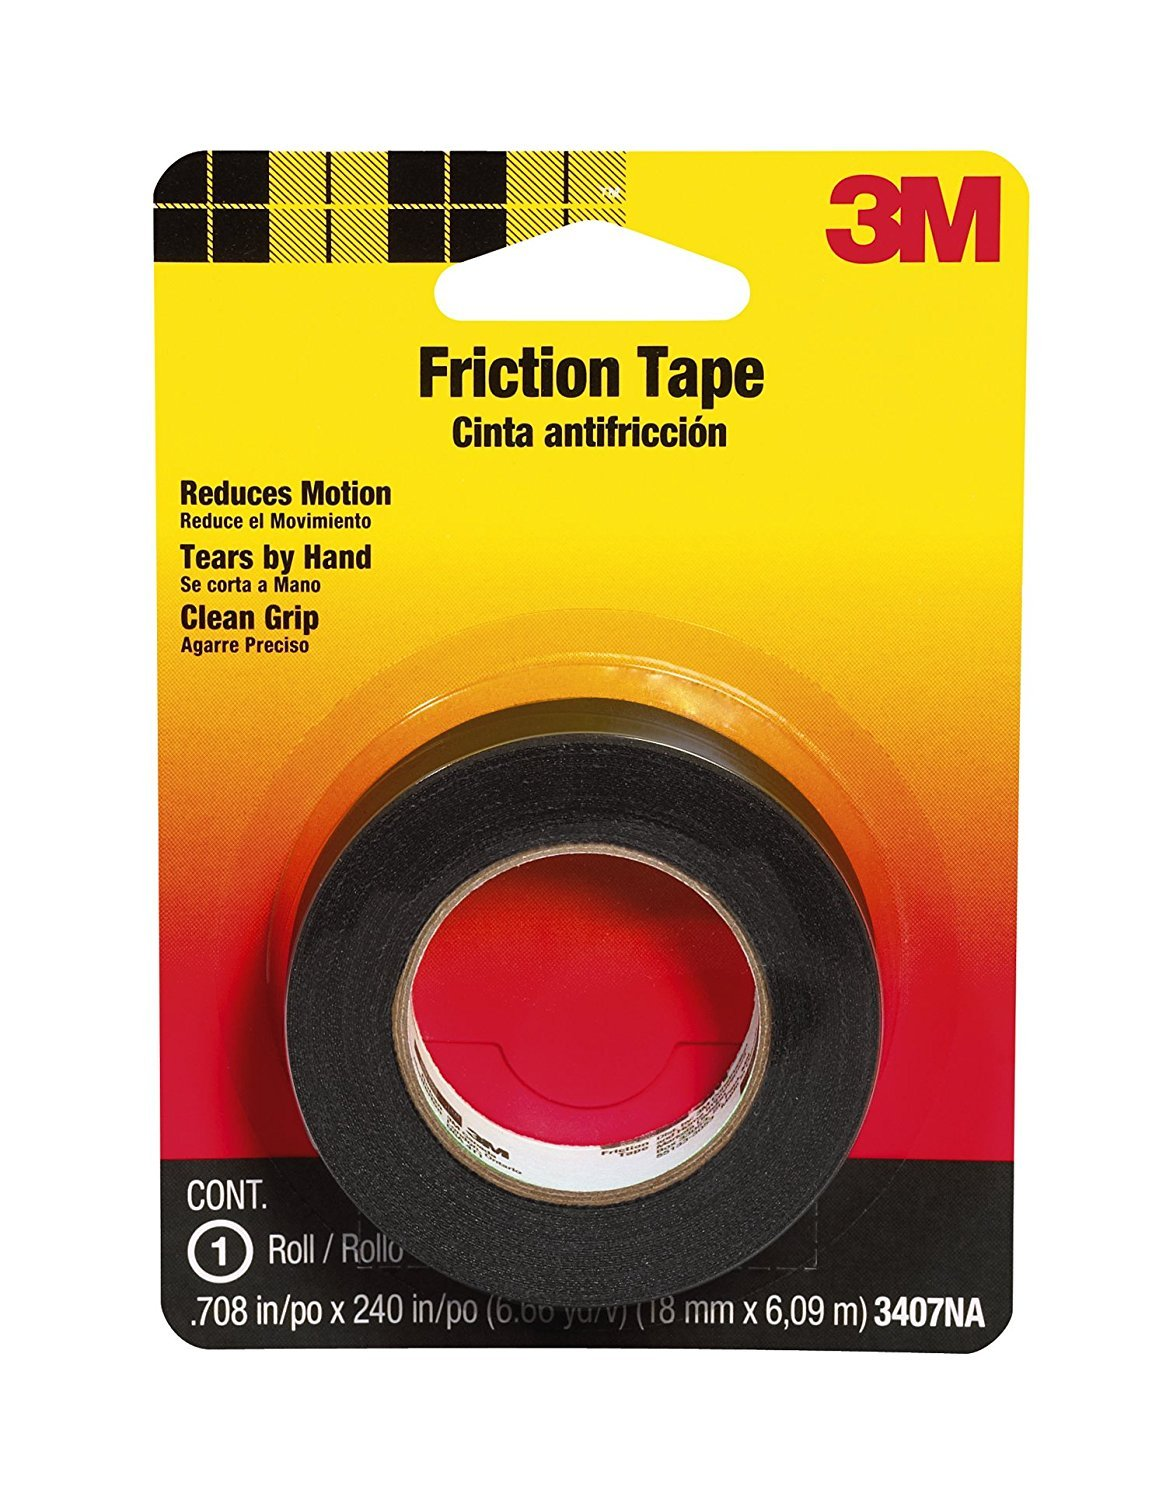 712u 6ejKCL._SL1500_ amazon com 3m 3407na friction tape, 0 708 inch x 240 inch home 3m harness tape at eliteediting.co